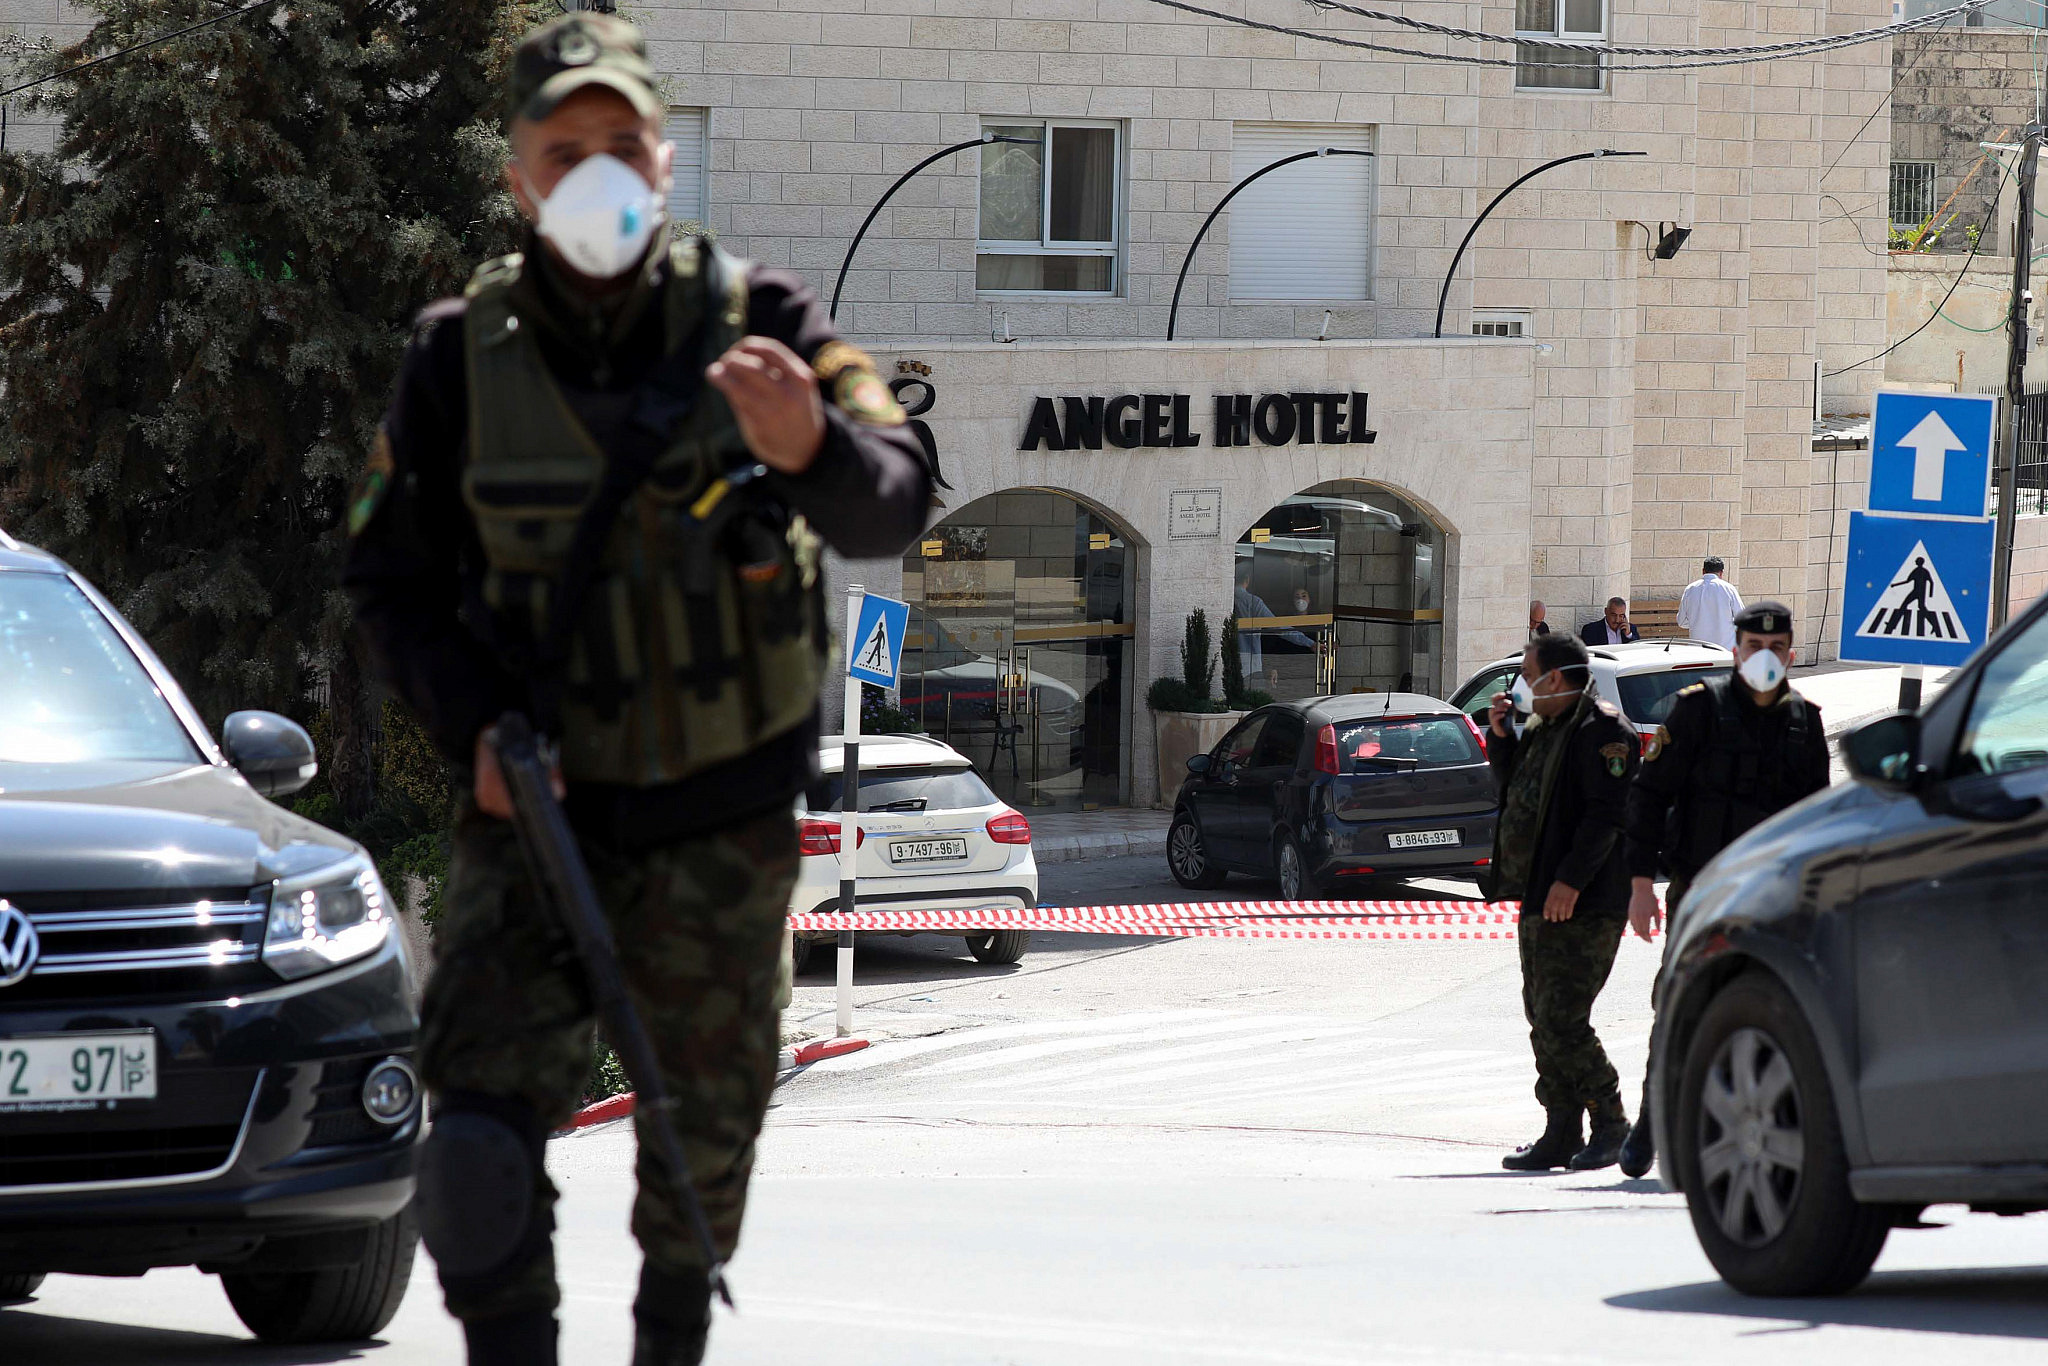 Palestinian security forces wearing face masks block the entrance to the Angel Hotel in Beit Jala town, near Bethlehem, March 5, 2020. (Wissam Hashlamoun/Flash90.)